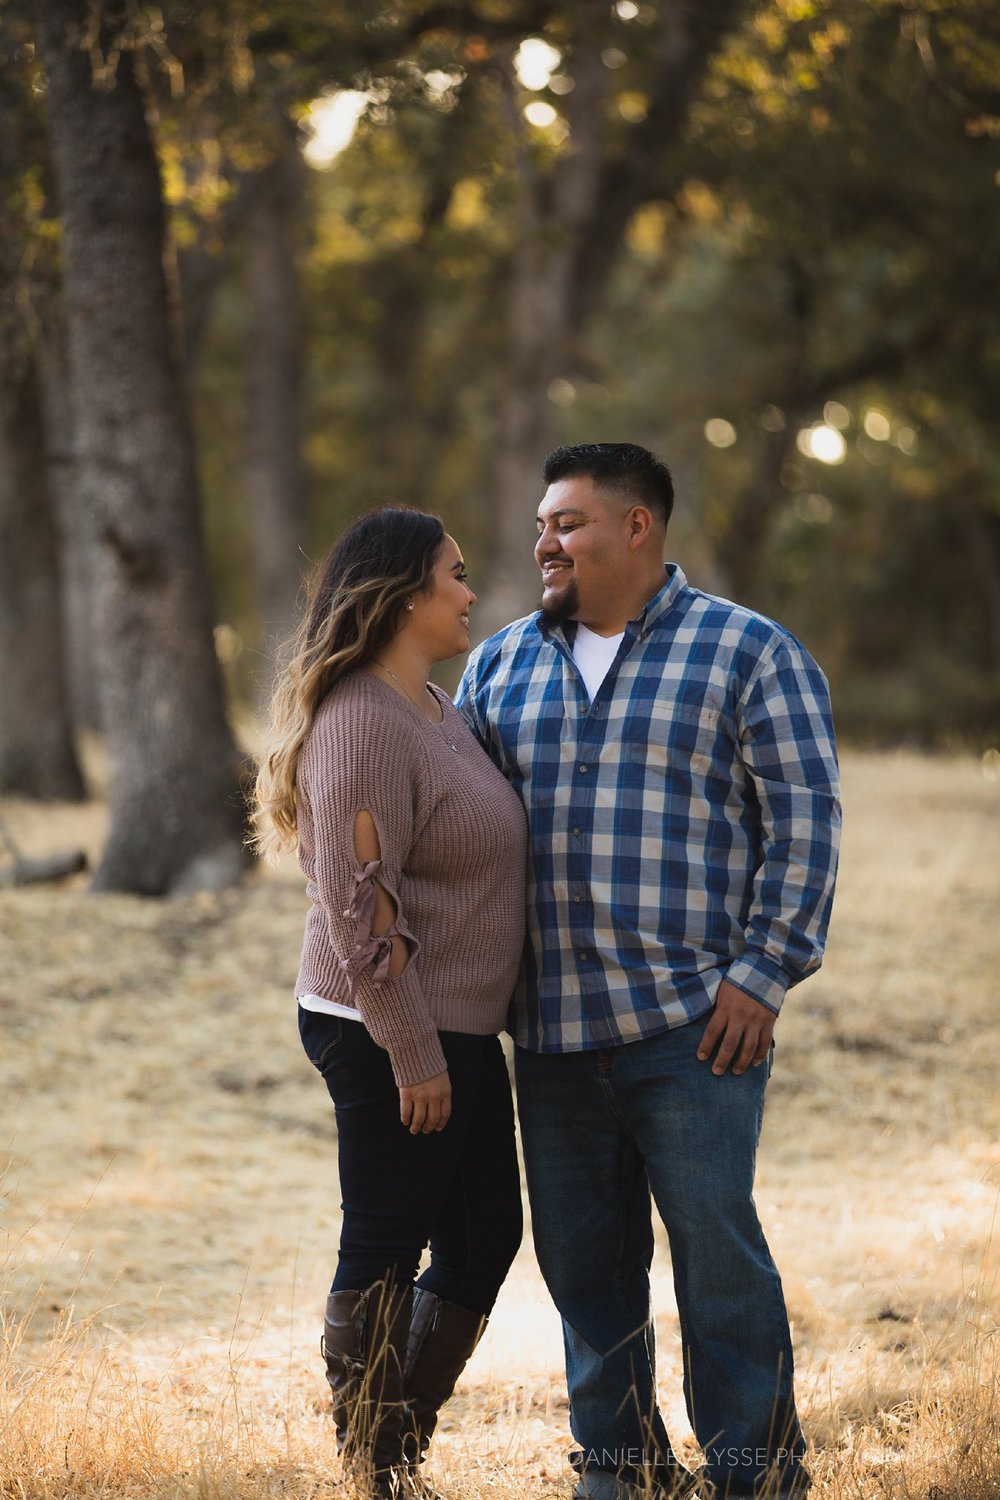 171001_blog_fall_roseville_blue_oaks_park_claudia_danielle_alysse_photography_sacramento_photographer14_WEB.jpg